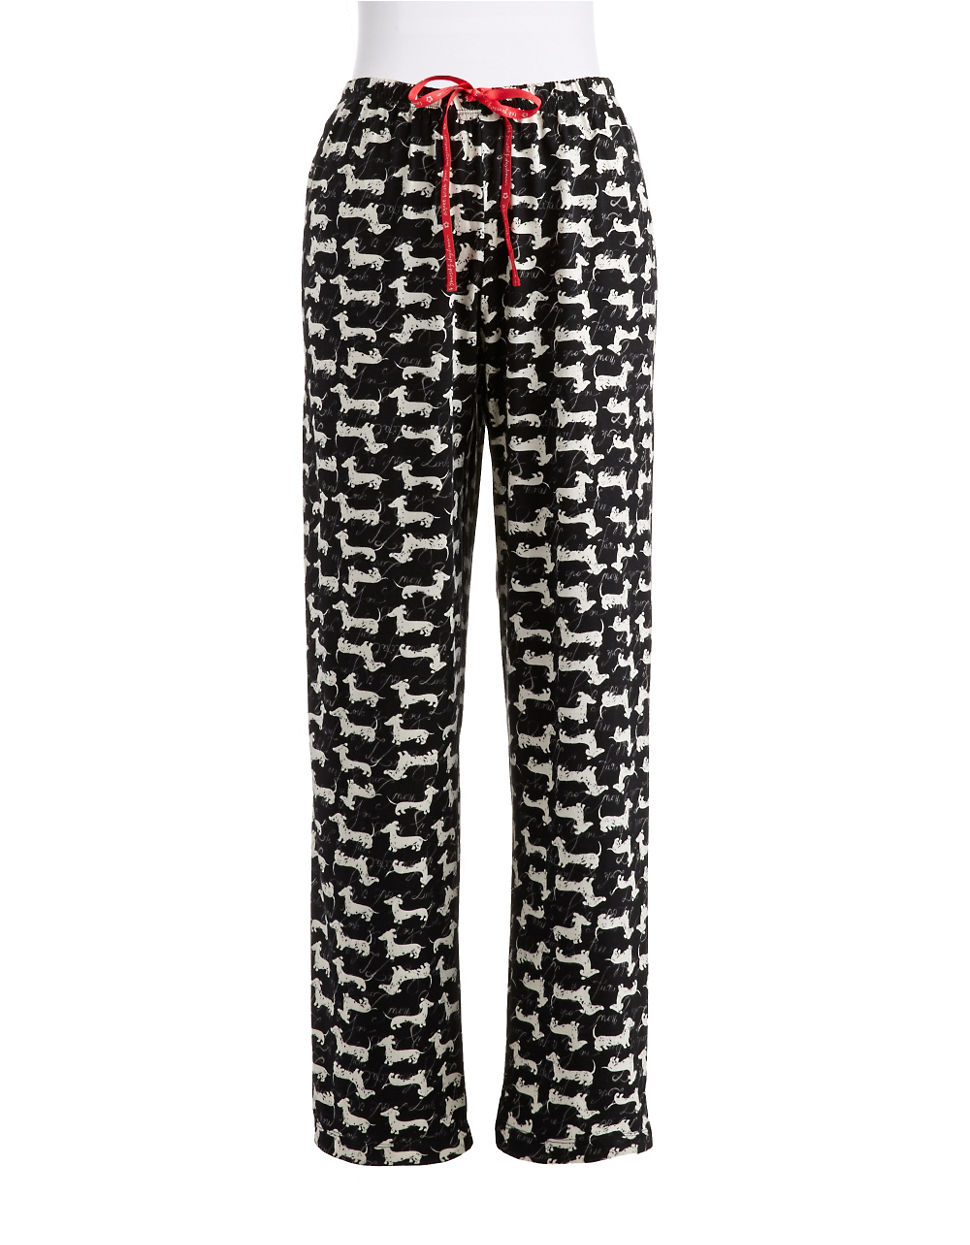 Lyst Hue Dachshund Pajama Pants In Black